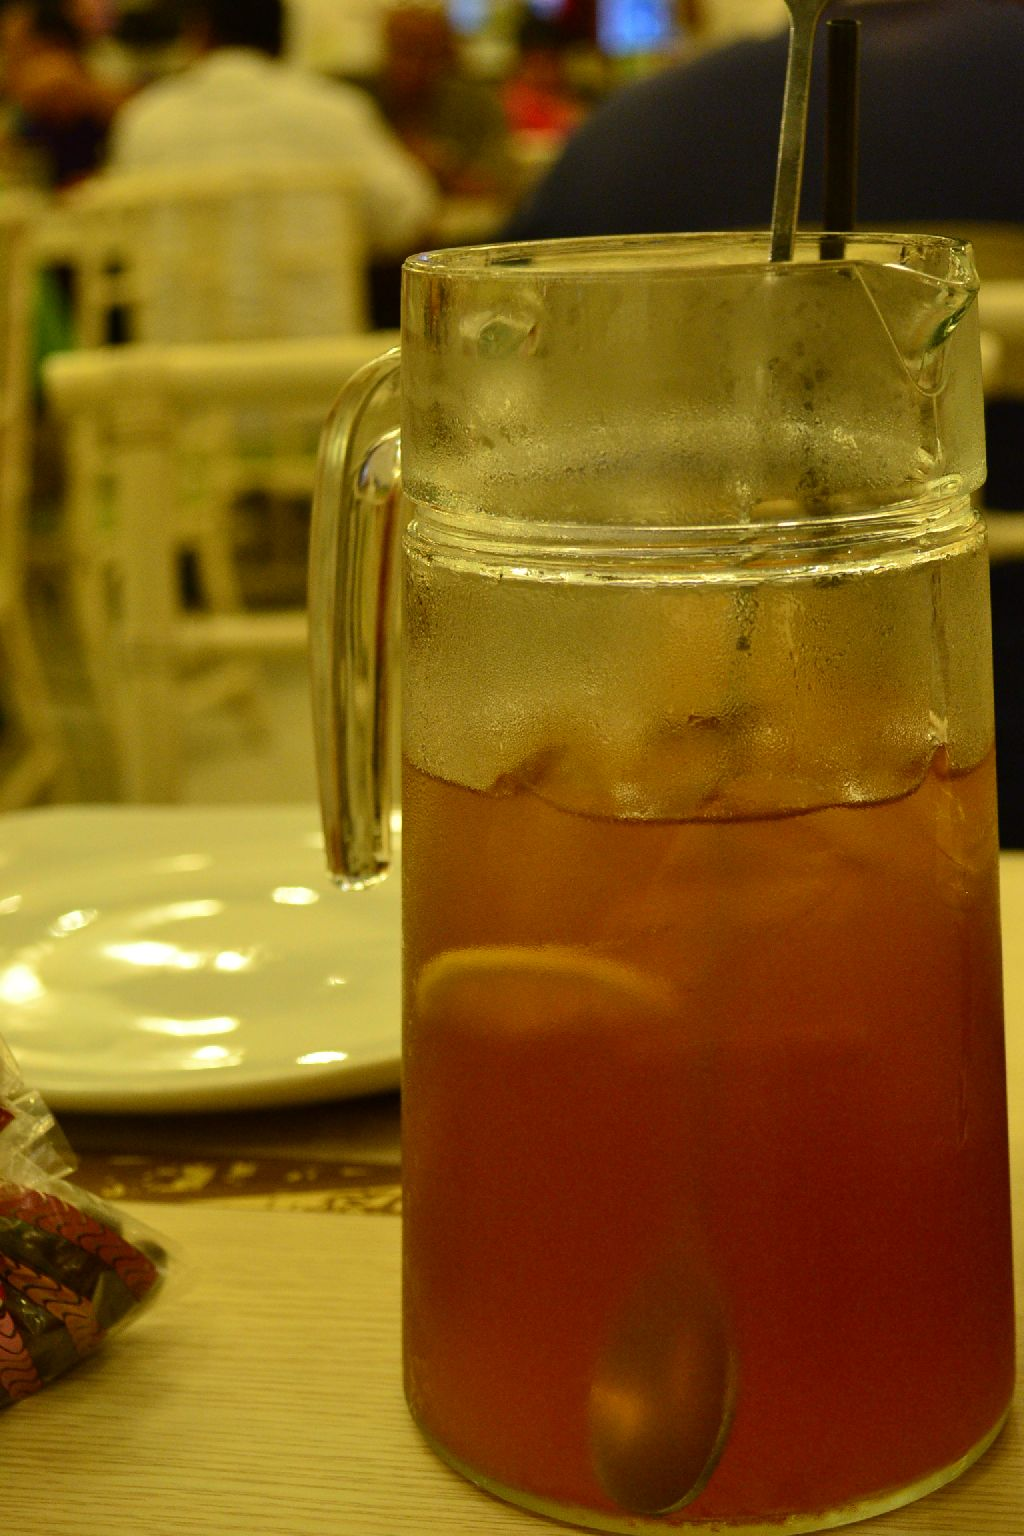 Chikaan - Picher of Iced Tea